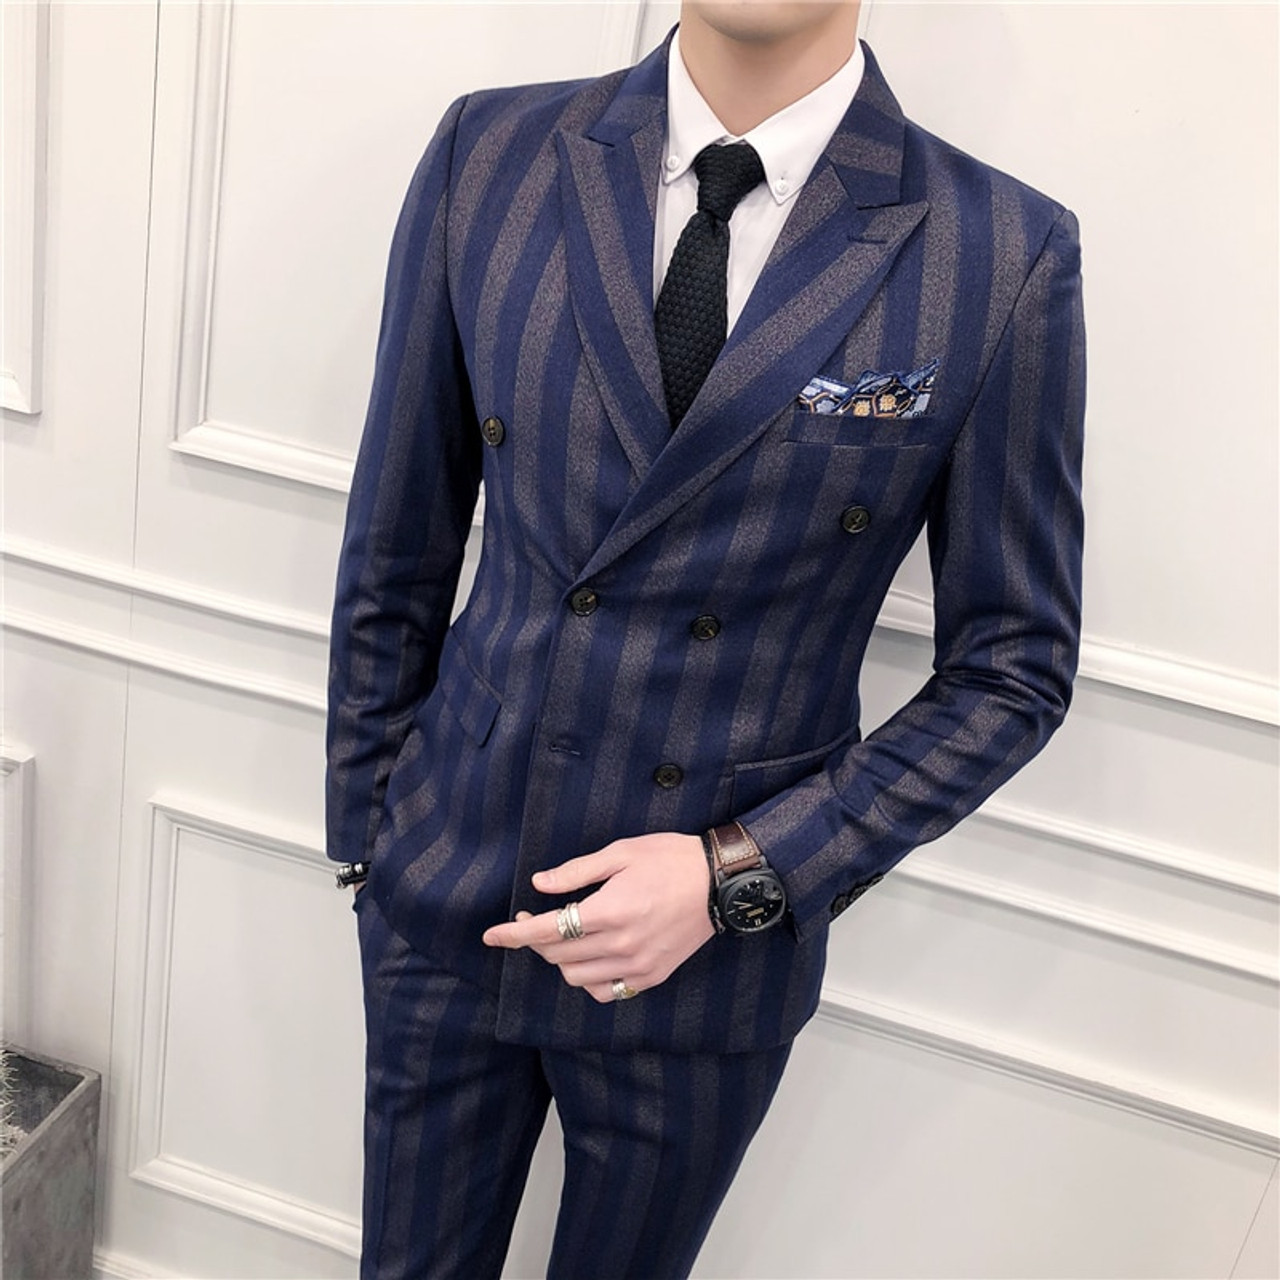 4fe3ec5b6846 Slim Fit Double Breasted Suit 2018 Latest Coat Pant Designs Skinny Men Prom  Stripe Suits Wedding ...